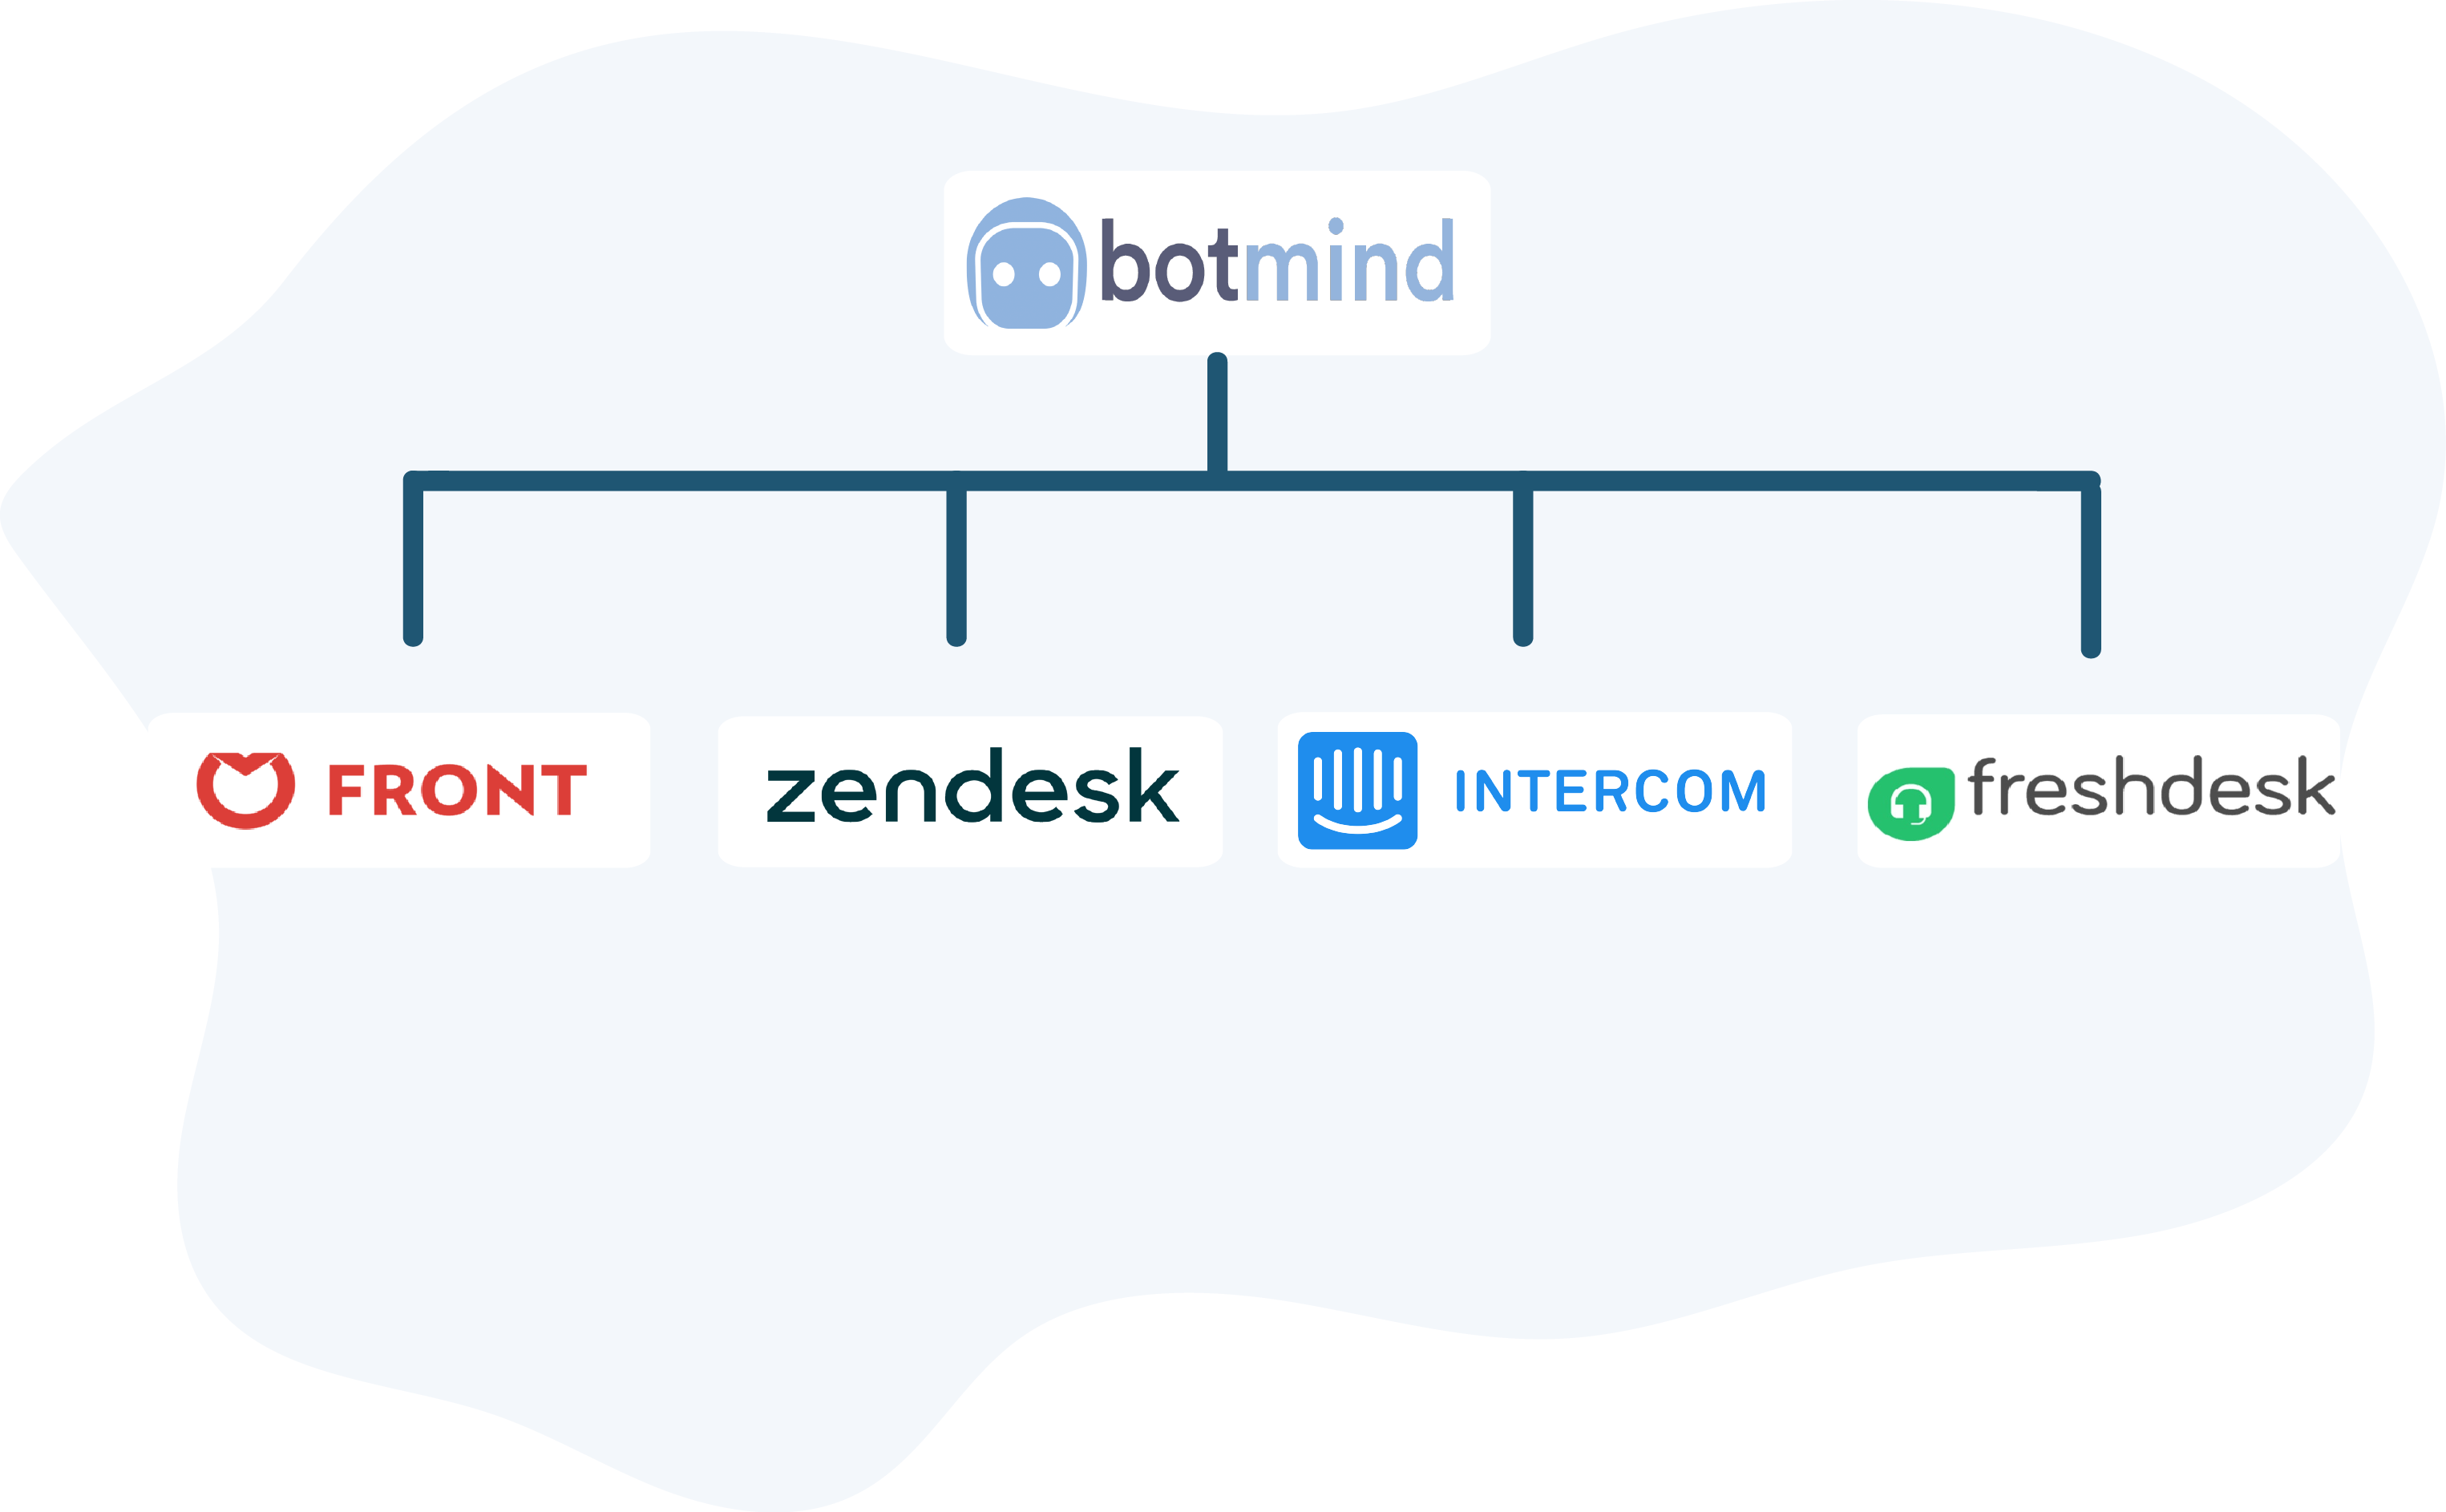 Botmind can be easily plugged into Zendesk, Front, Intercom and Freshchat